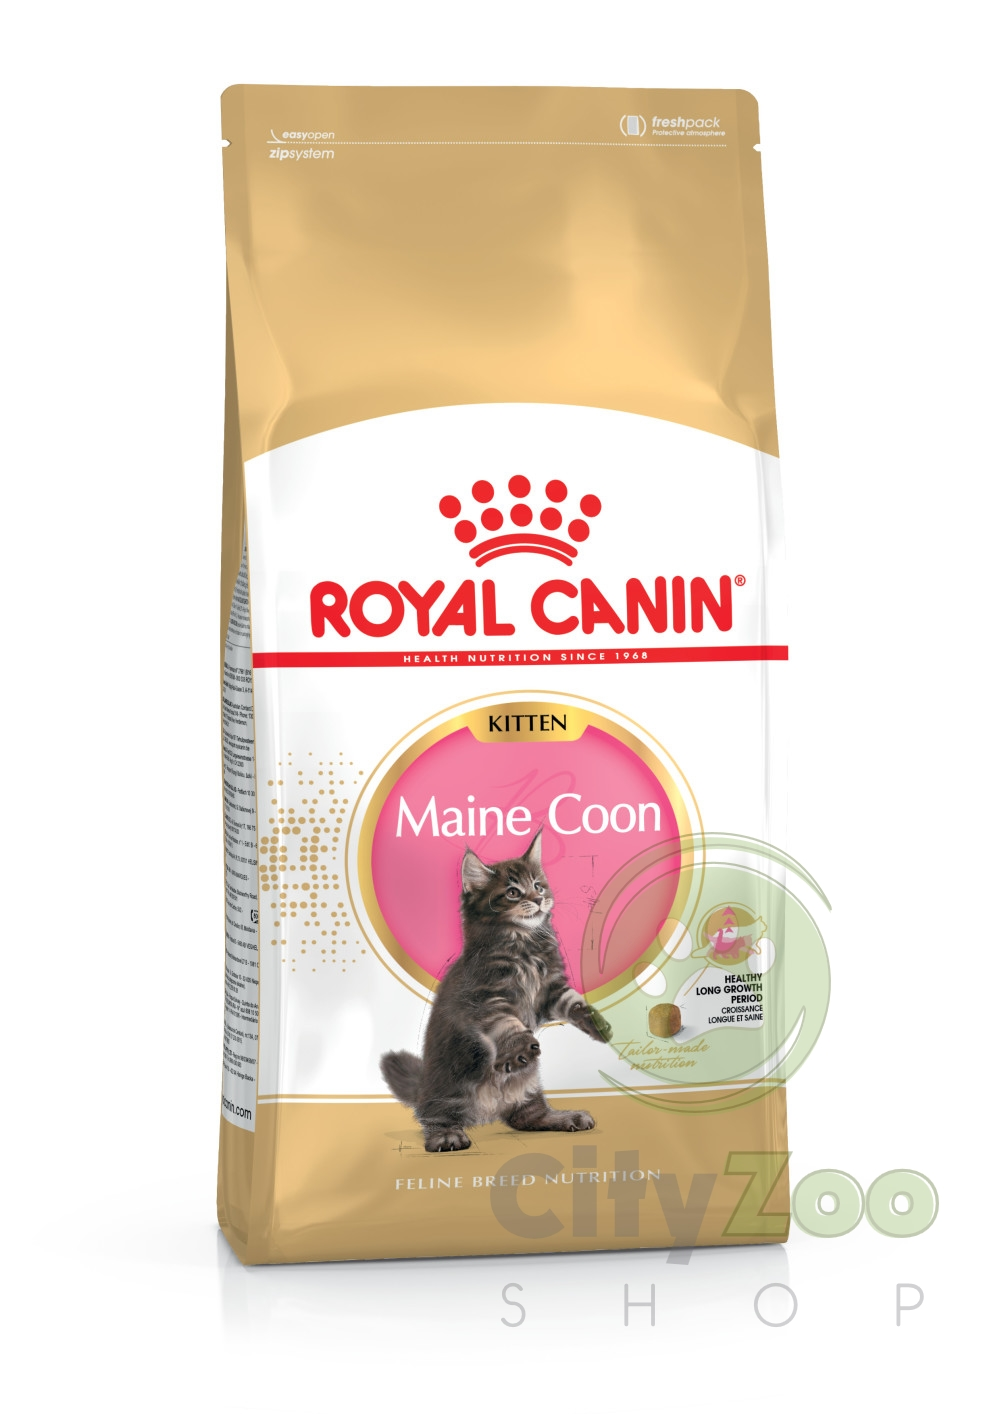 zoo/Royal_Canin_Maine_Coon_Kitten